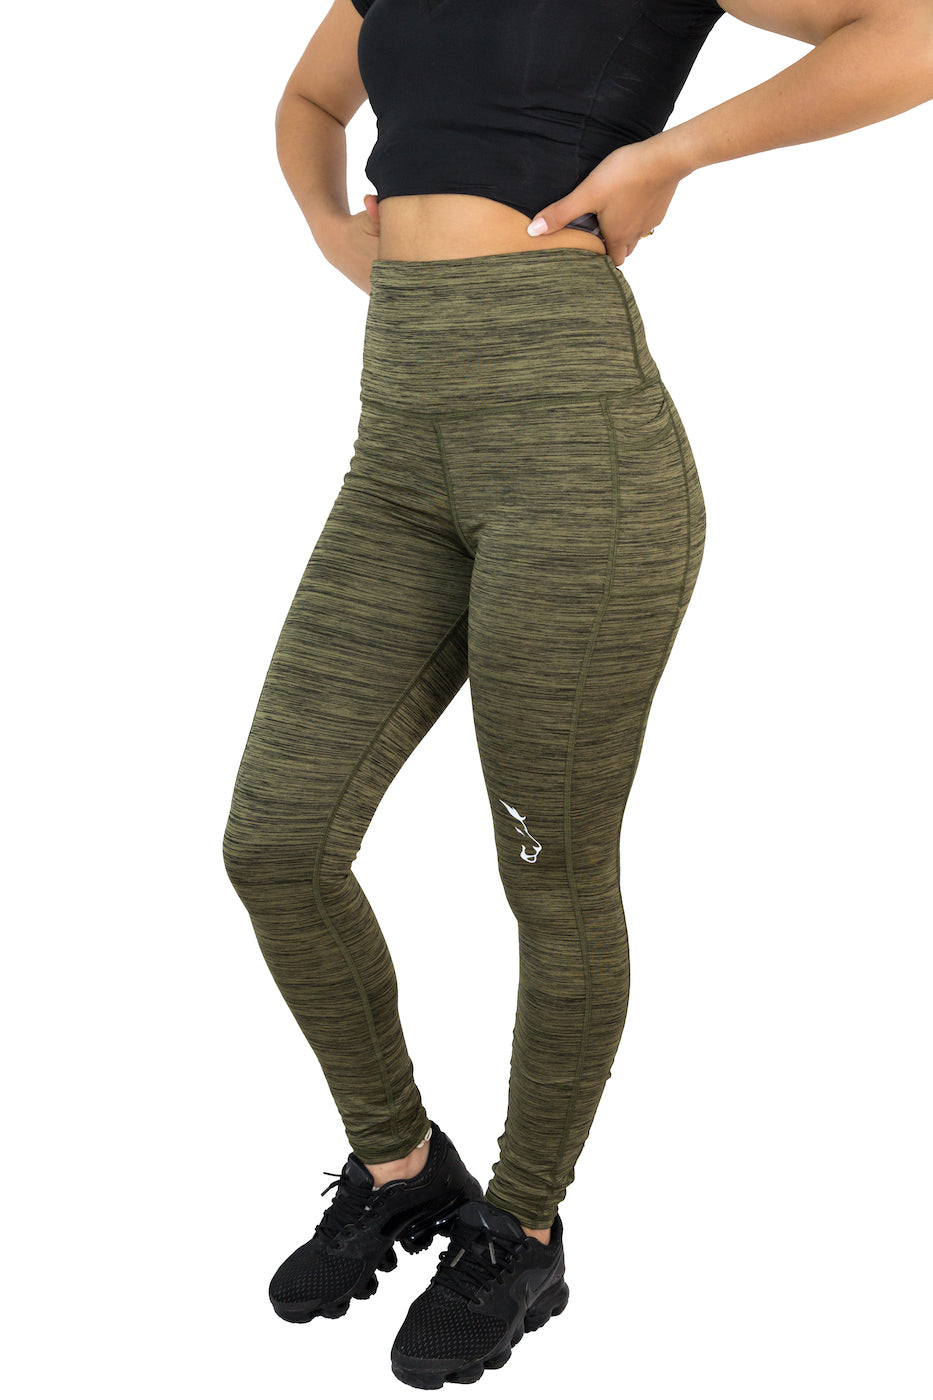 Knee Tag - Women Dark Green Leggings